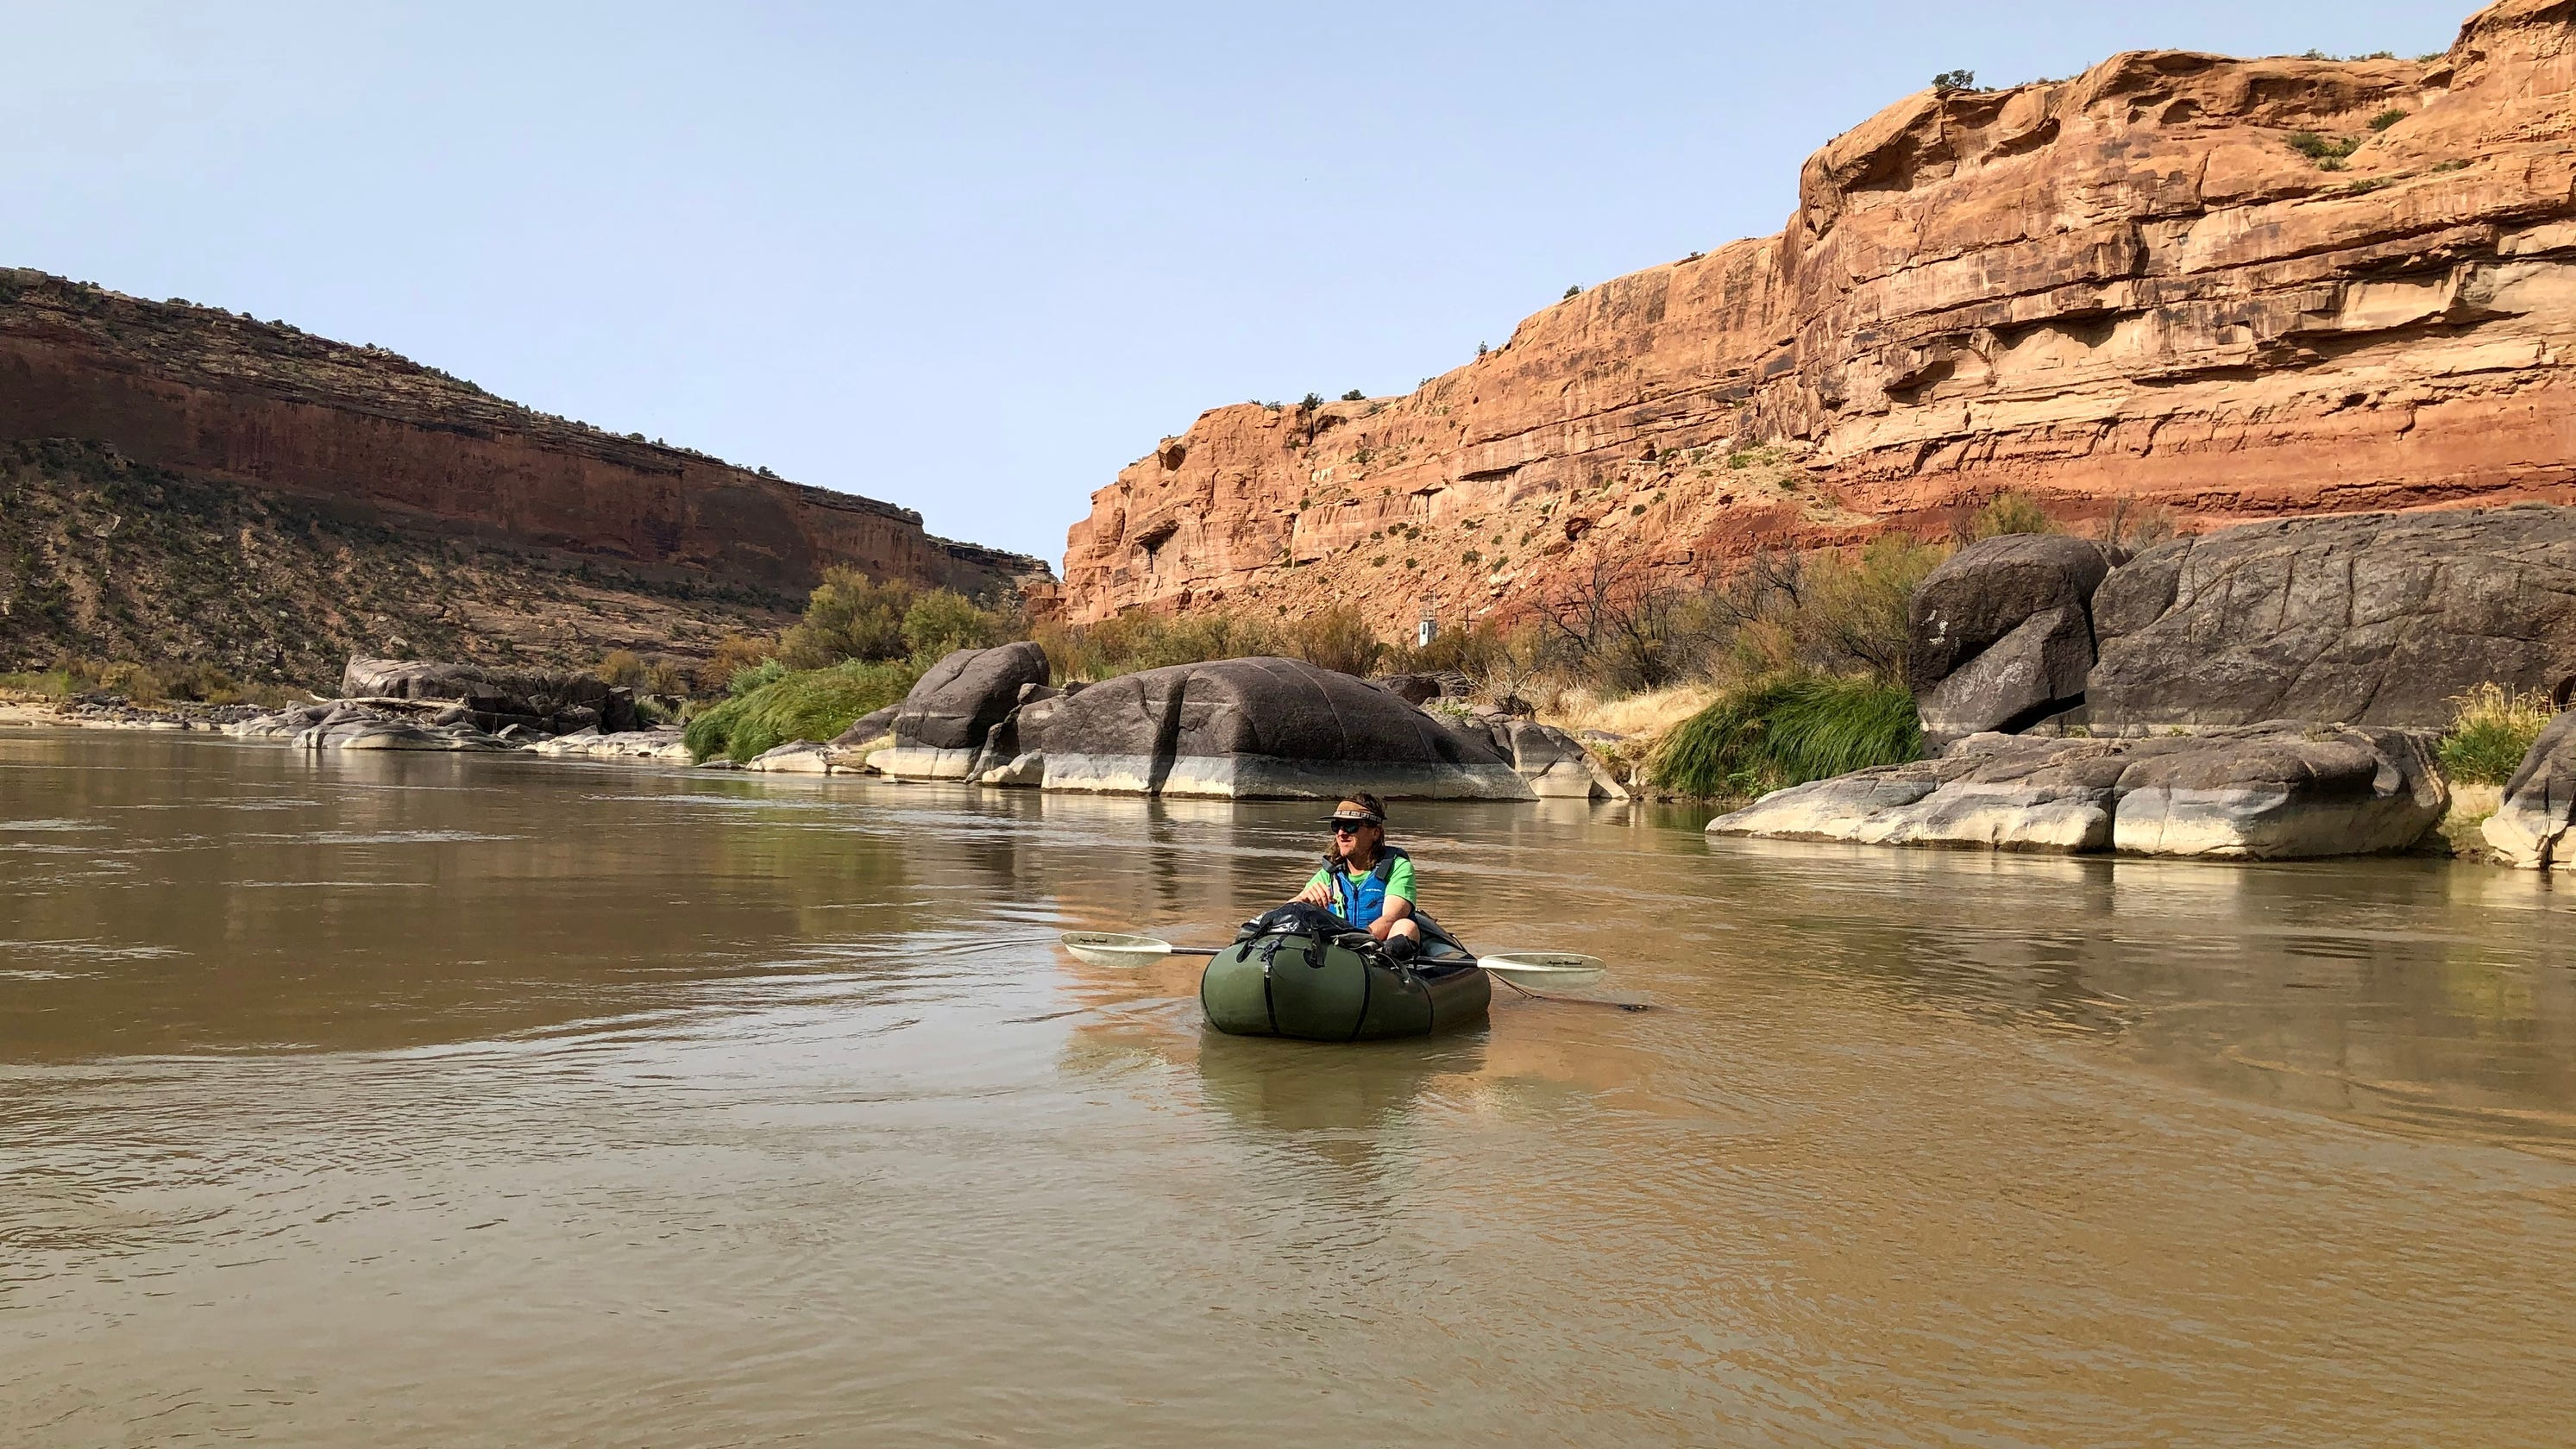 The Water Tap: More reports forecast lower water levels for Lake Powell, Colorado River